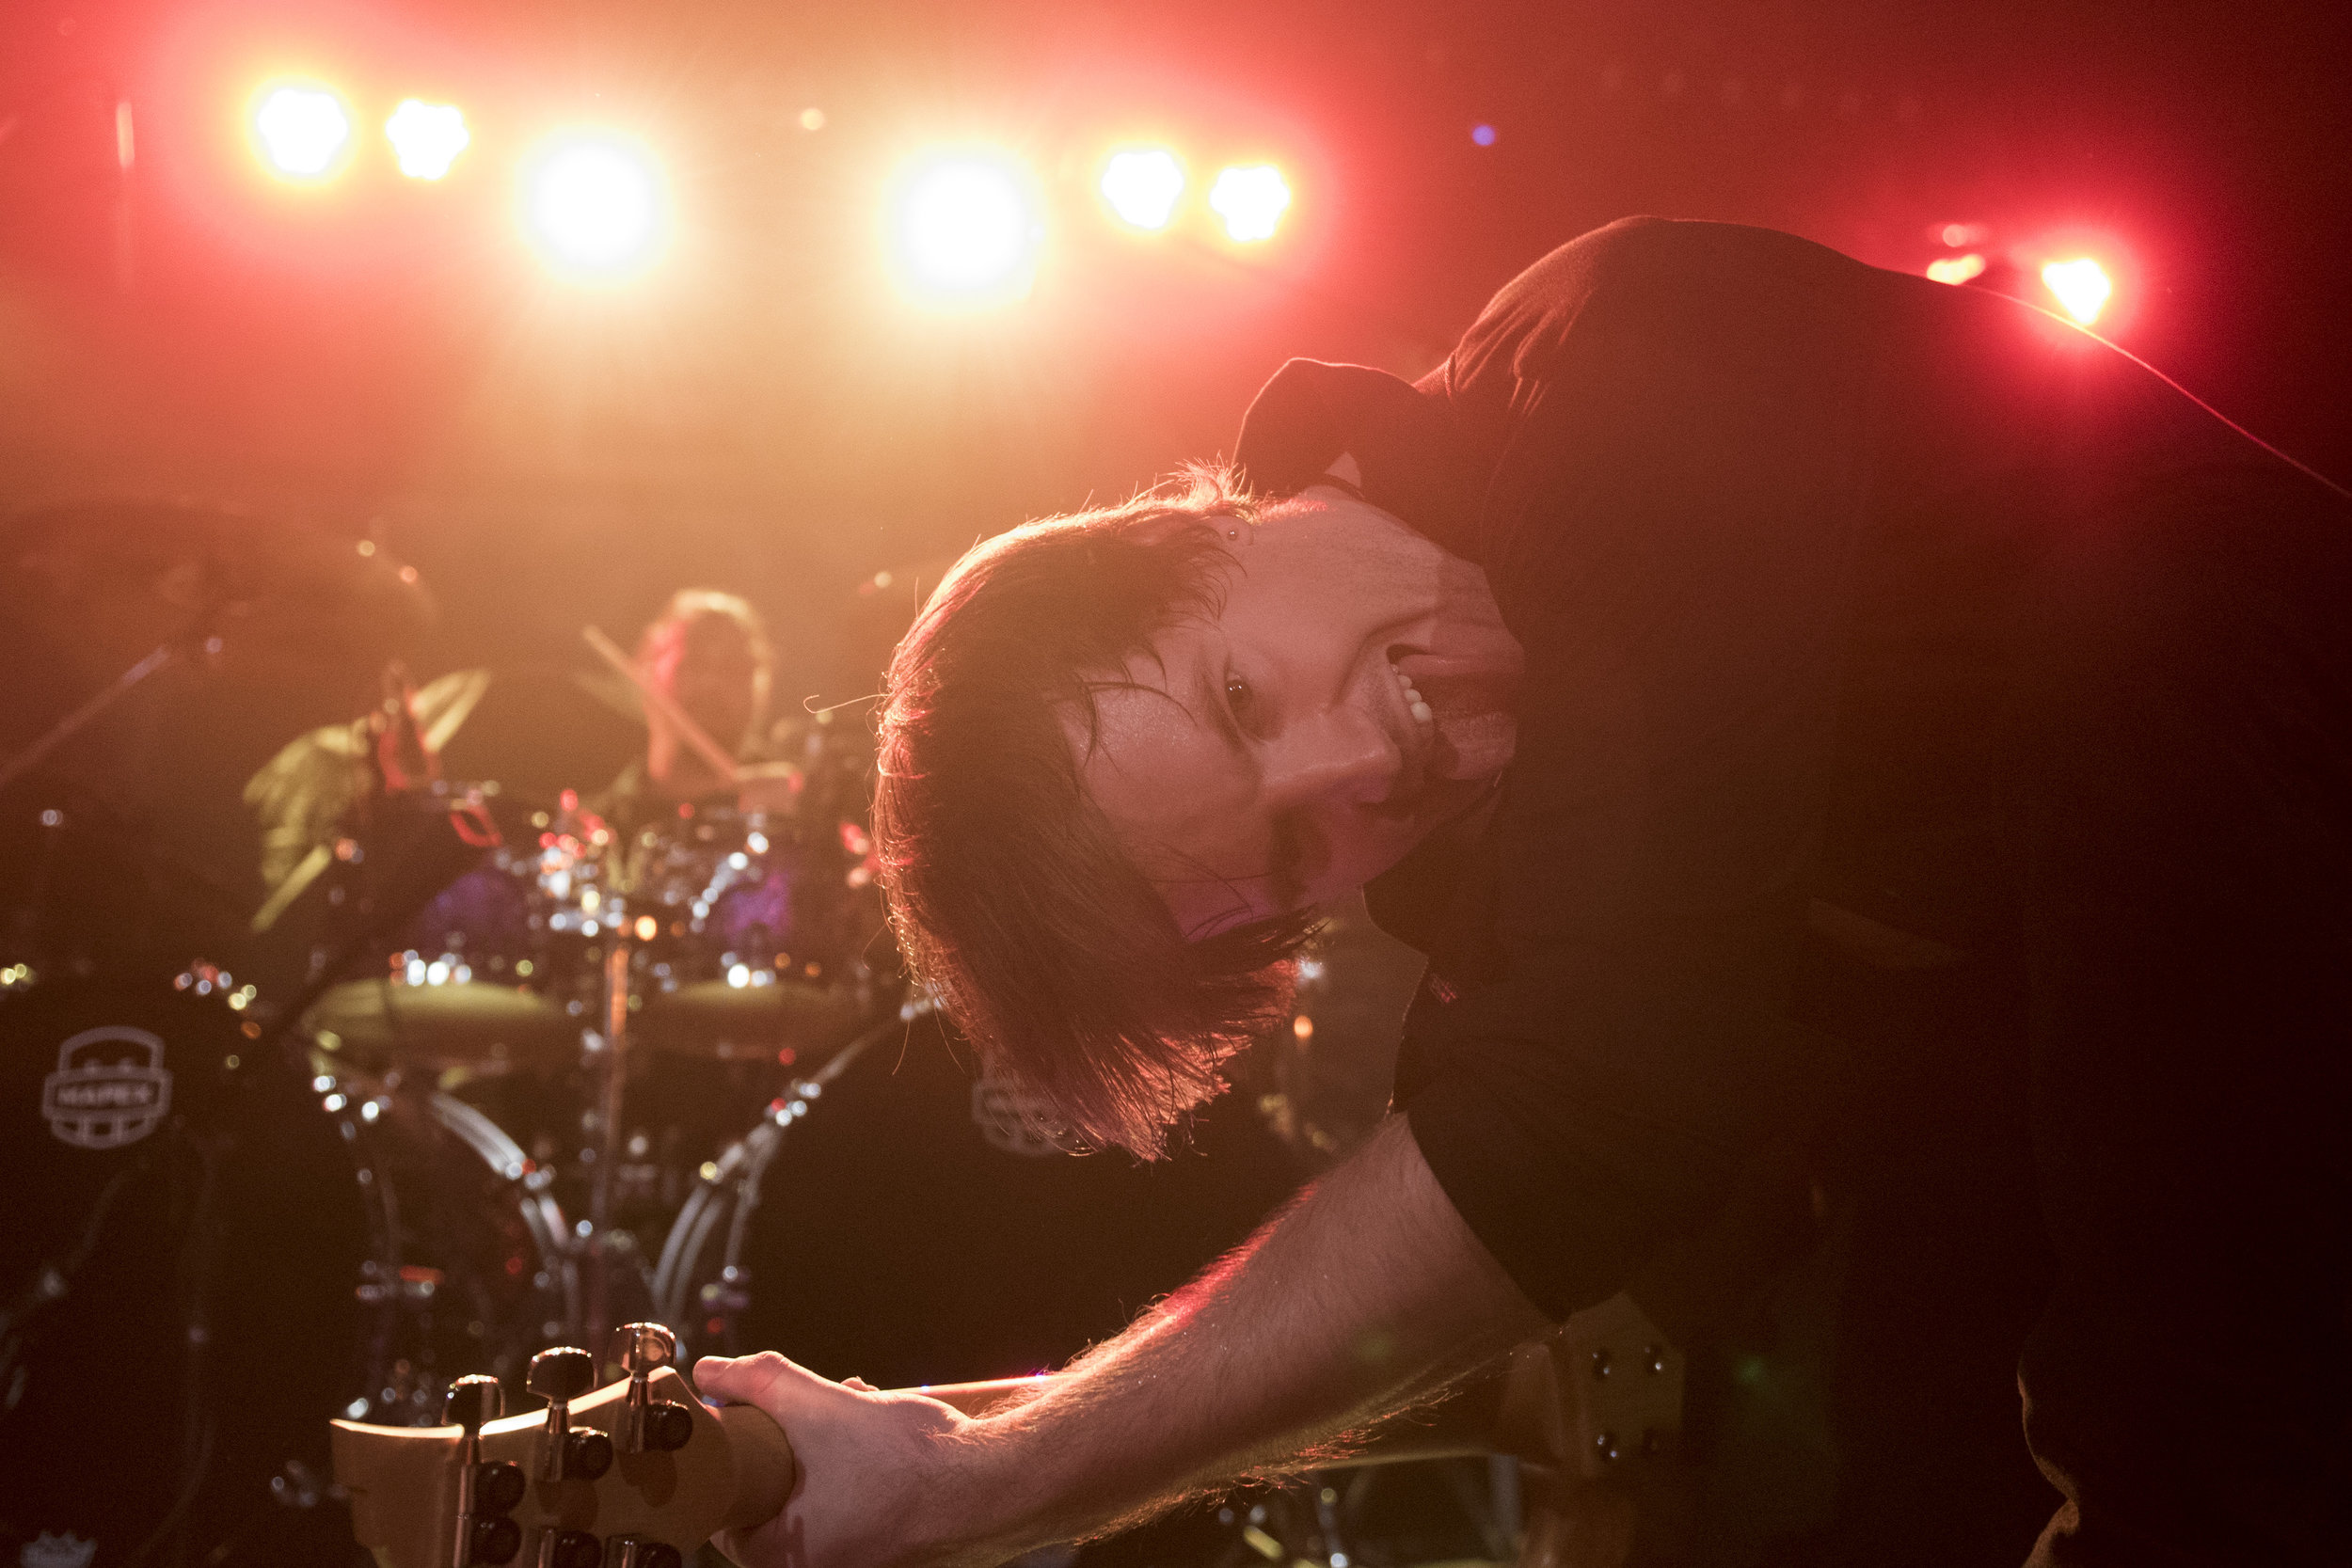 Adam Edwards performs with Honor Amongst Thieves at Vinyl in Las Vegas, Nev., Sept. 15, 2017.